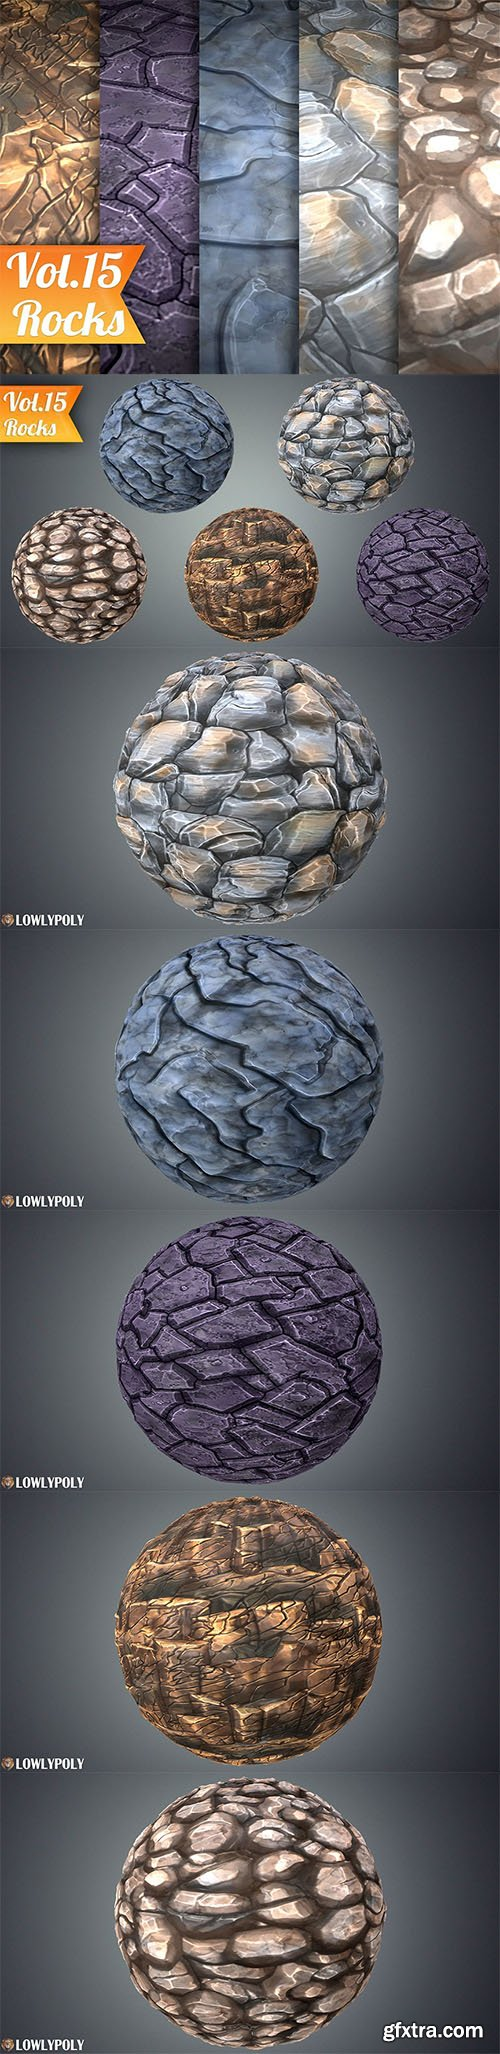 Cgtrader - Stylized Rocks Vol 15 - Hand Painted Texture Pack Texture